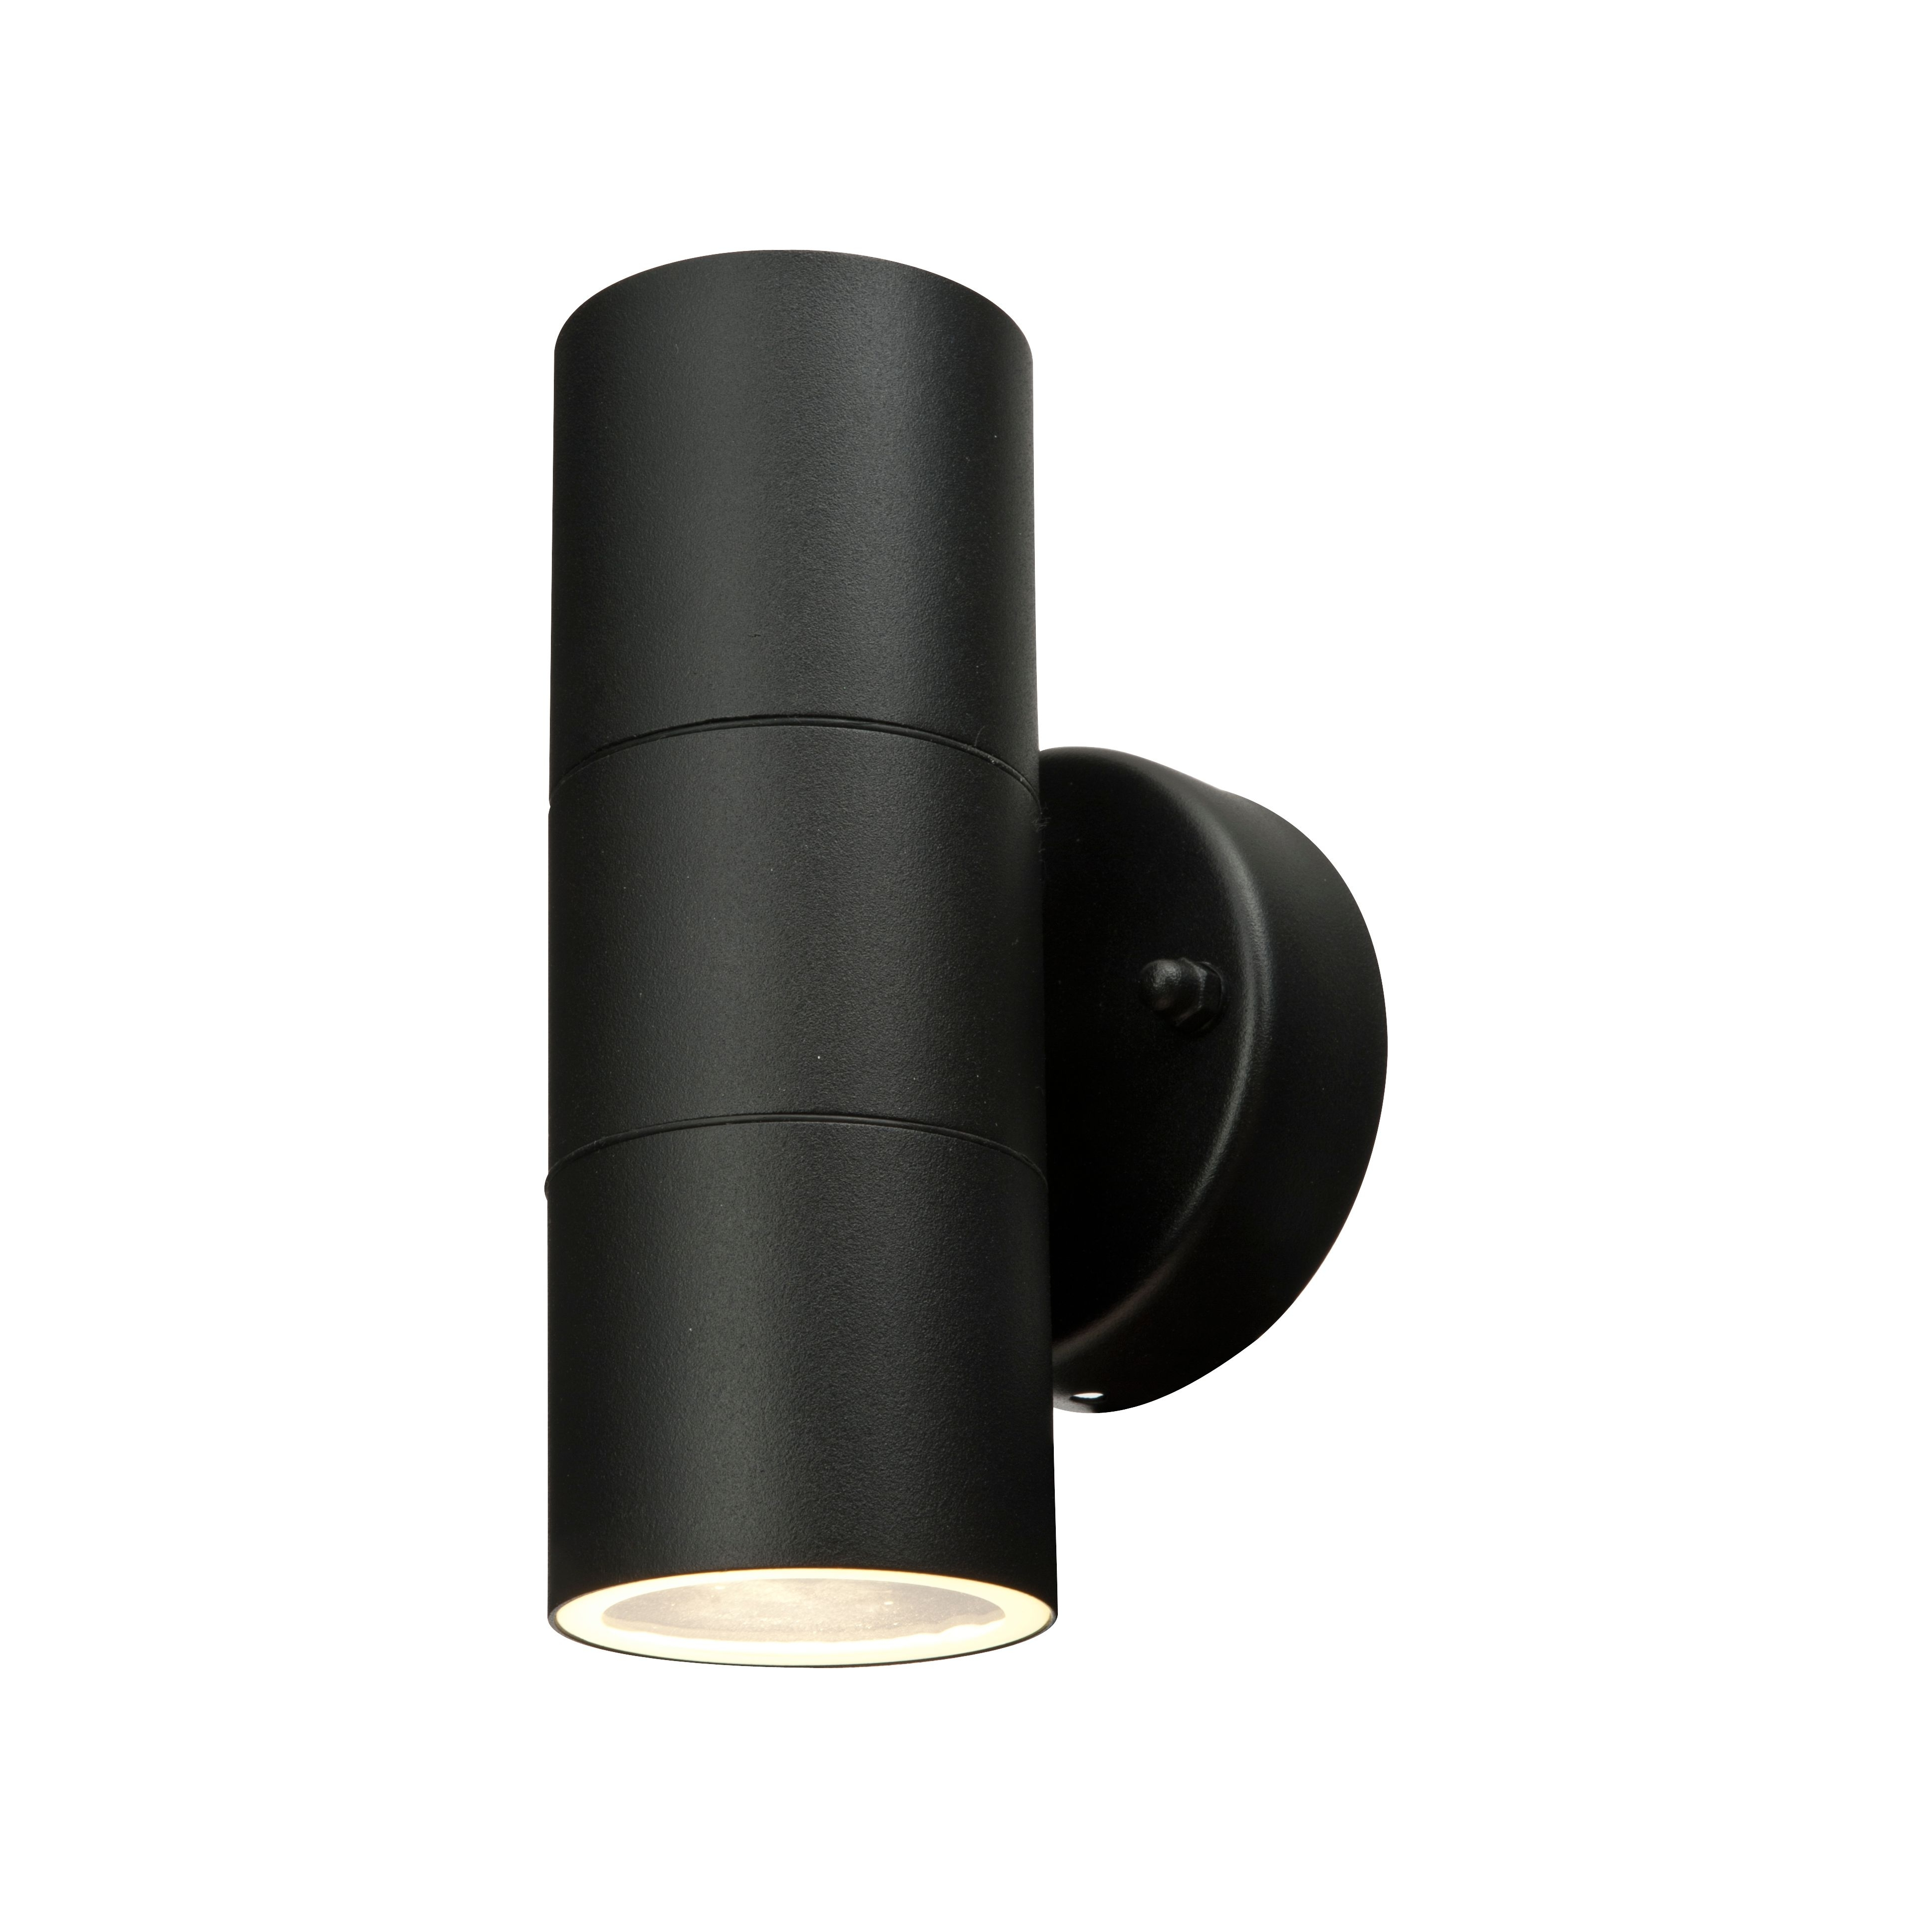 Blooma Somnus Black Mains Powered External Up & Down Wall Light Within Newest High Quality Outdoor Wall Lighting (Gallery 18 of 20)